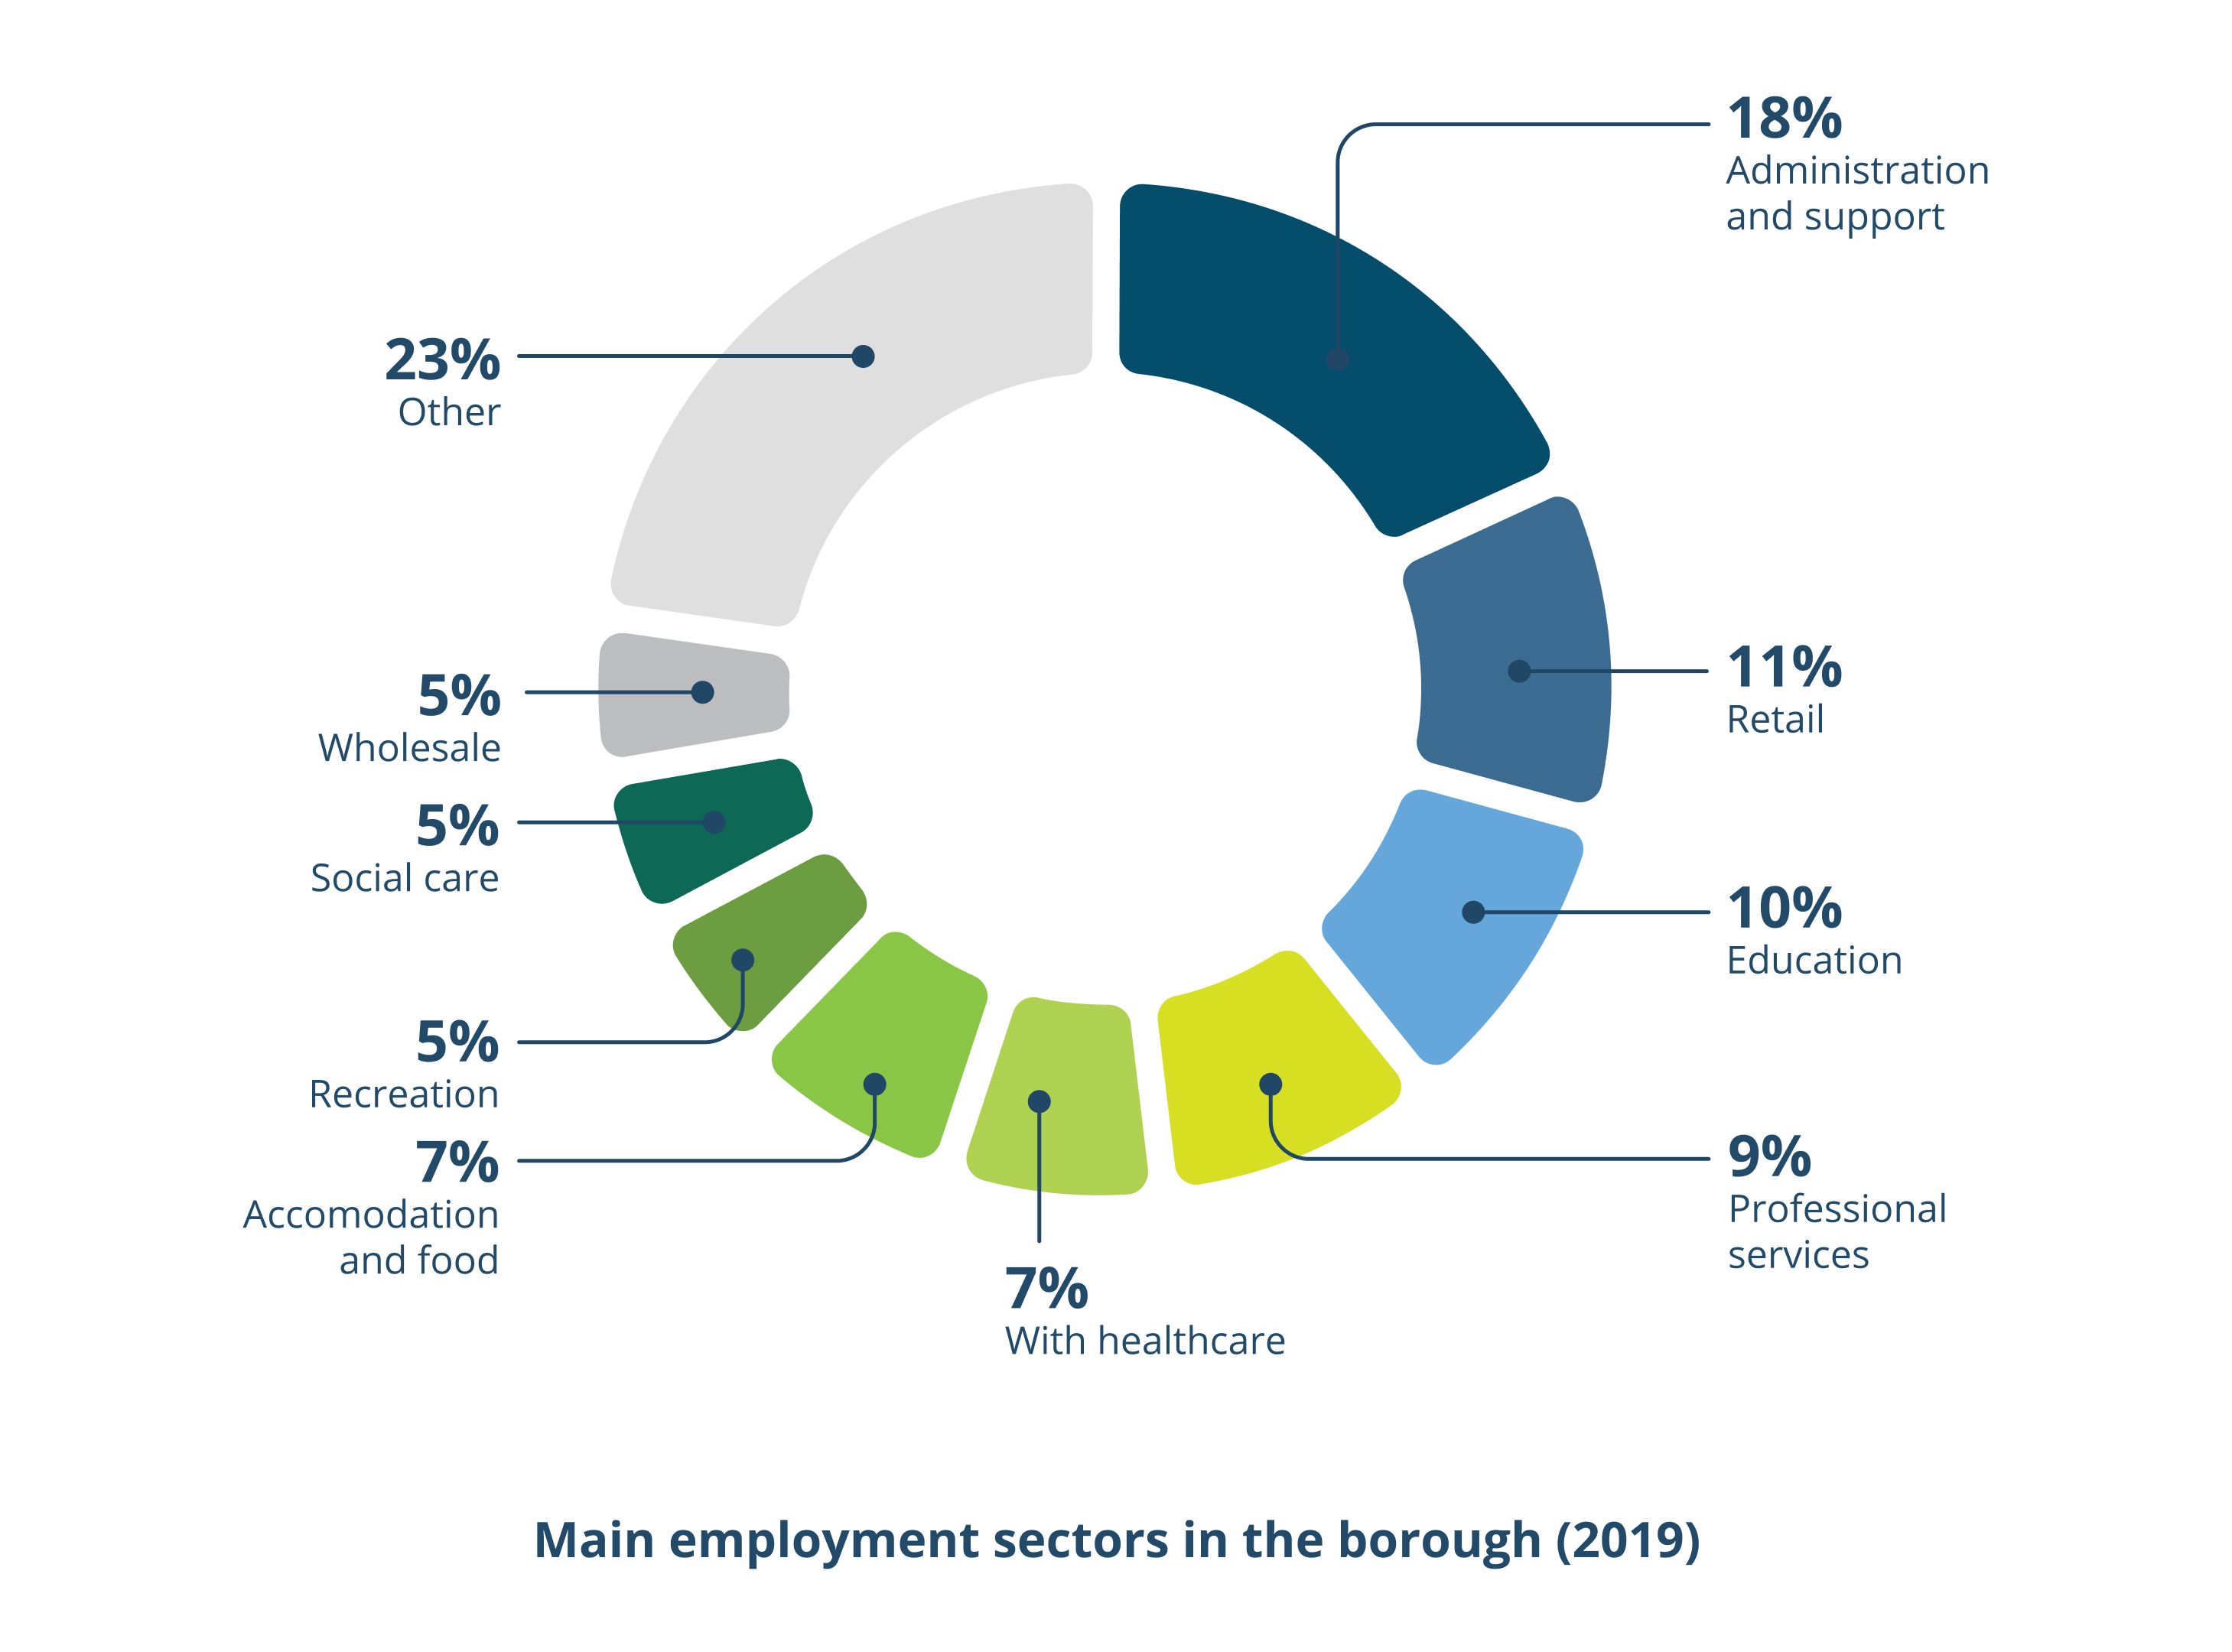 Main employment sectors in the borough (2019). 18% admin and support, 11% retail, 10% education, 9% professional services, 7% healthcare, 7% accomodation and food, 5% recreation, 5% social care, 5% wholesale, 23% other